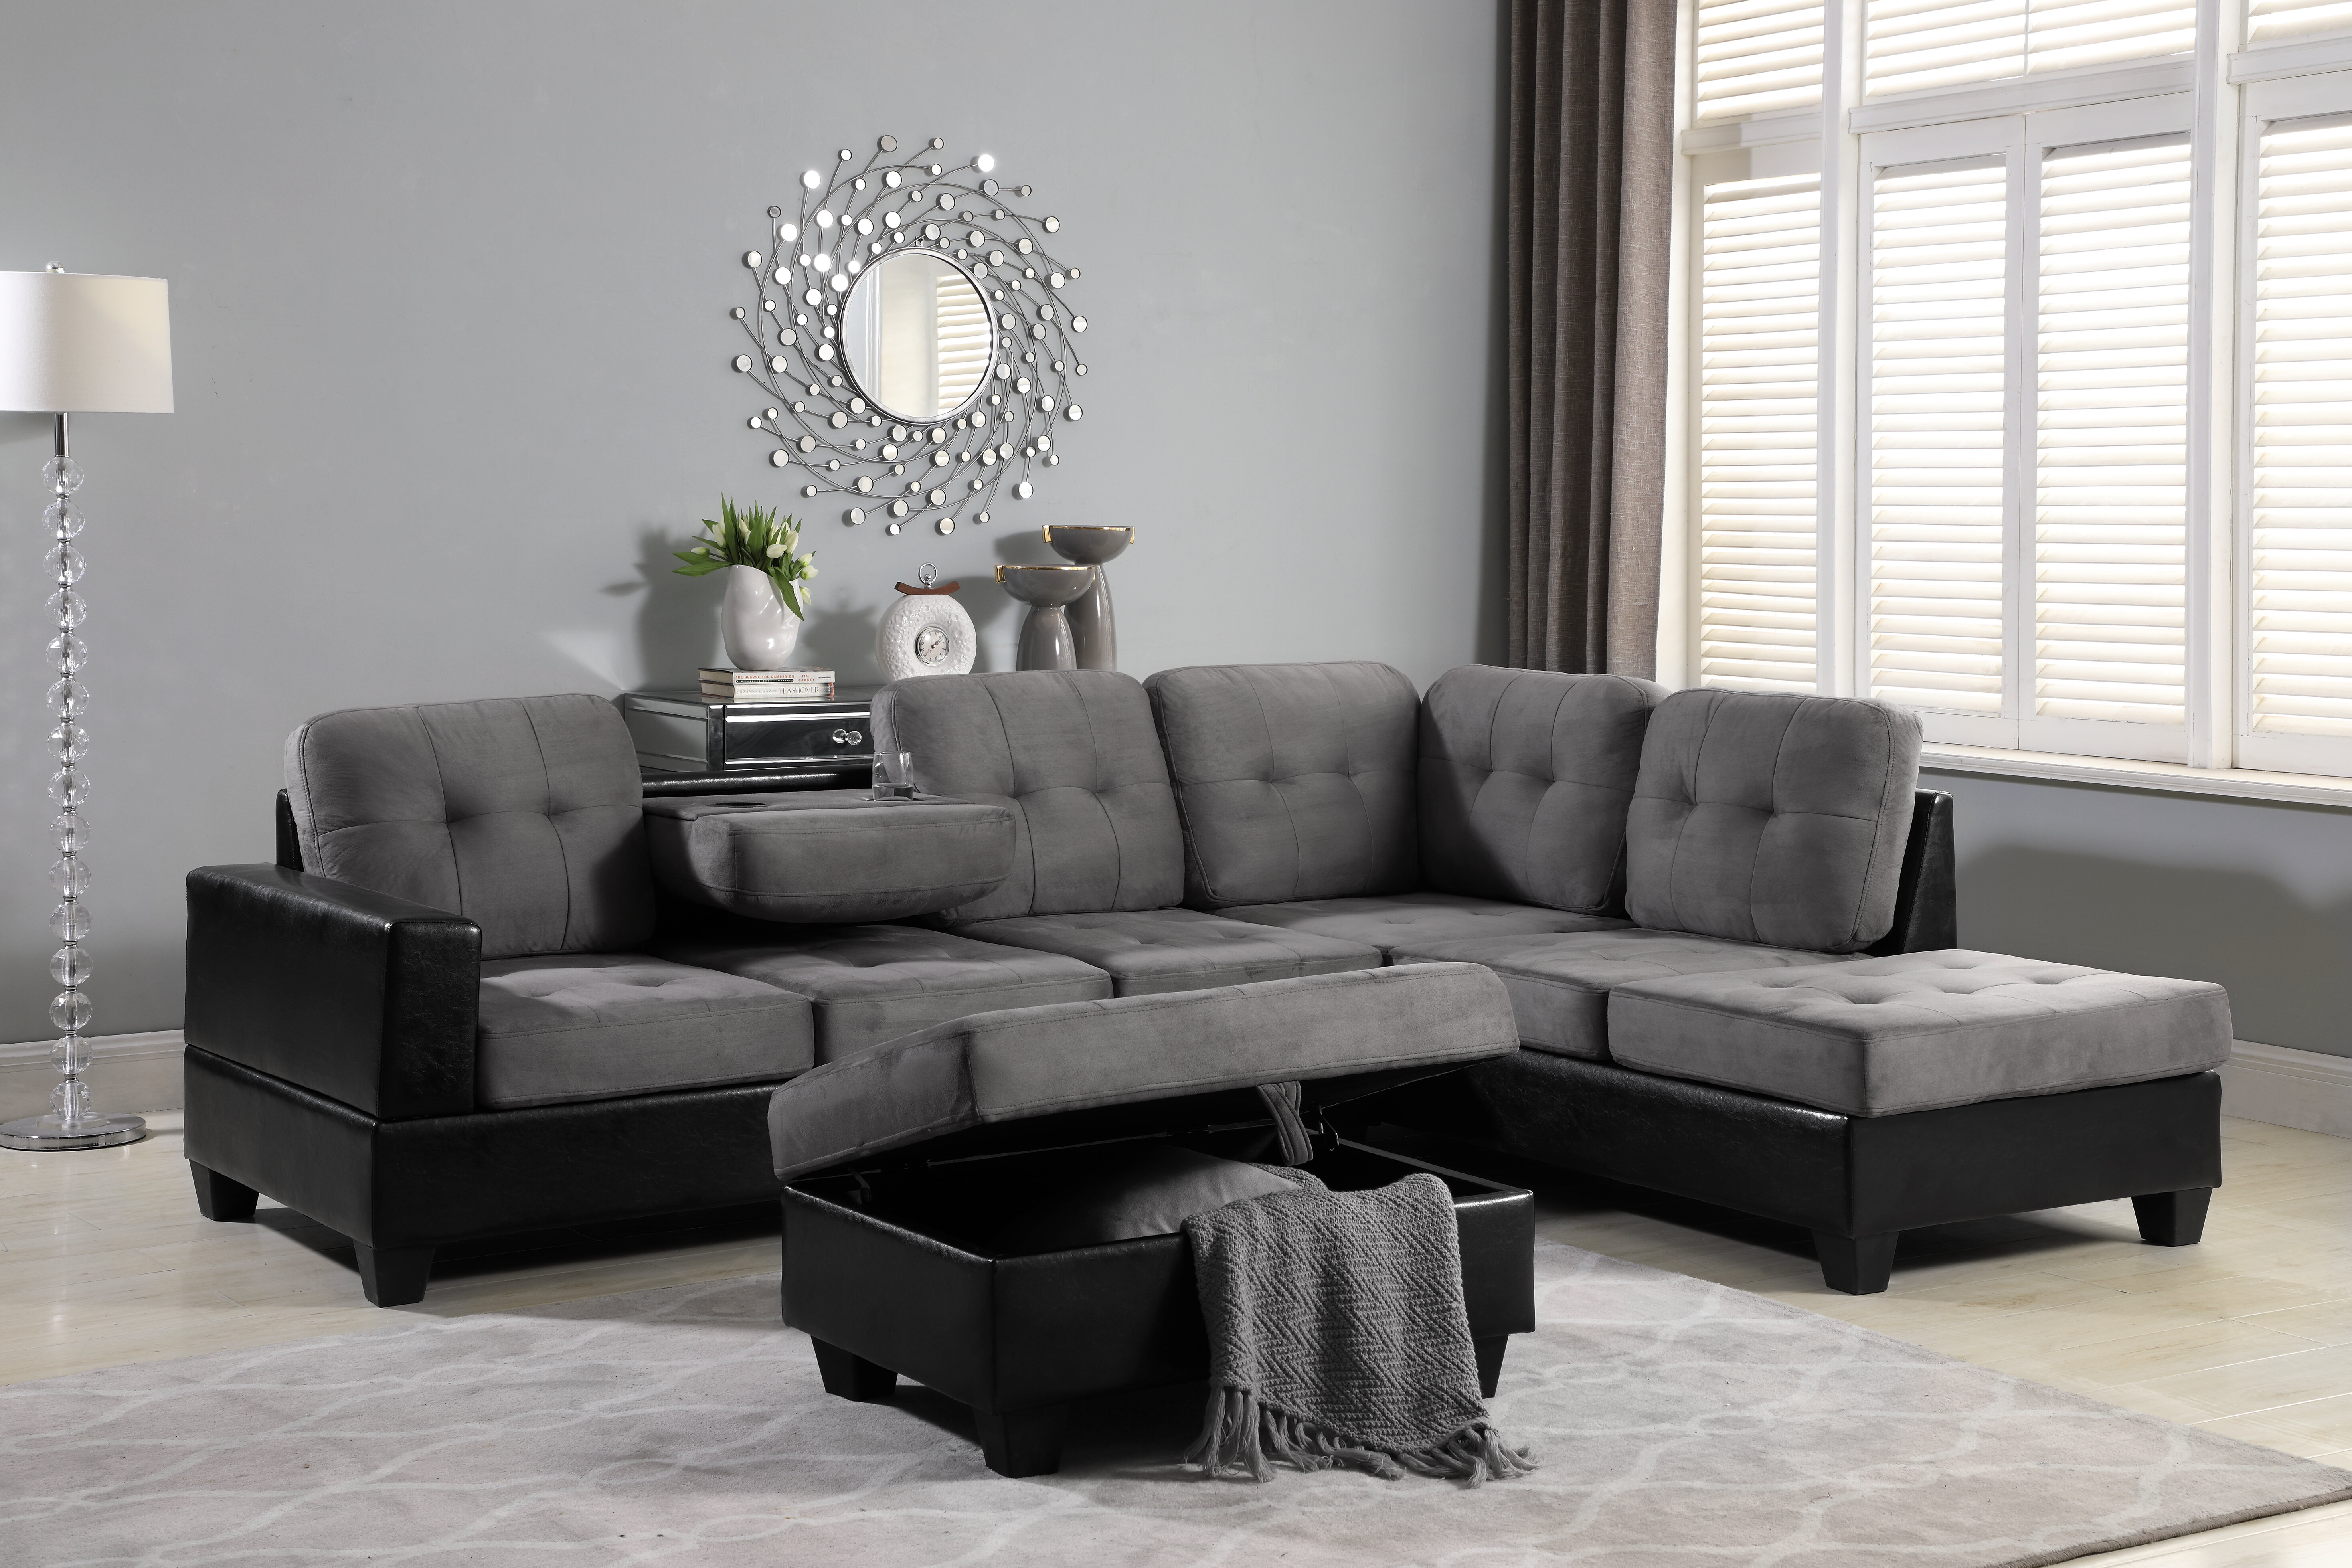 Terrific Hoehne Park Place Reversible Sectional With Ottoman Pabps2019 Chair Design Images Pabps2019Com